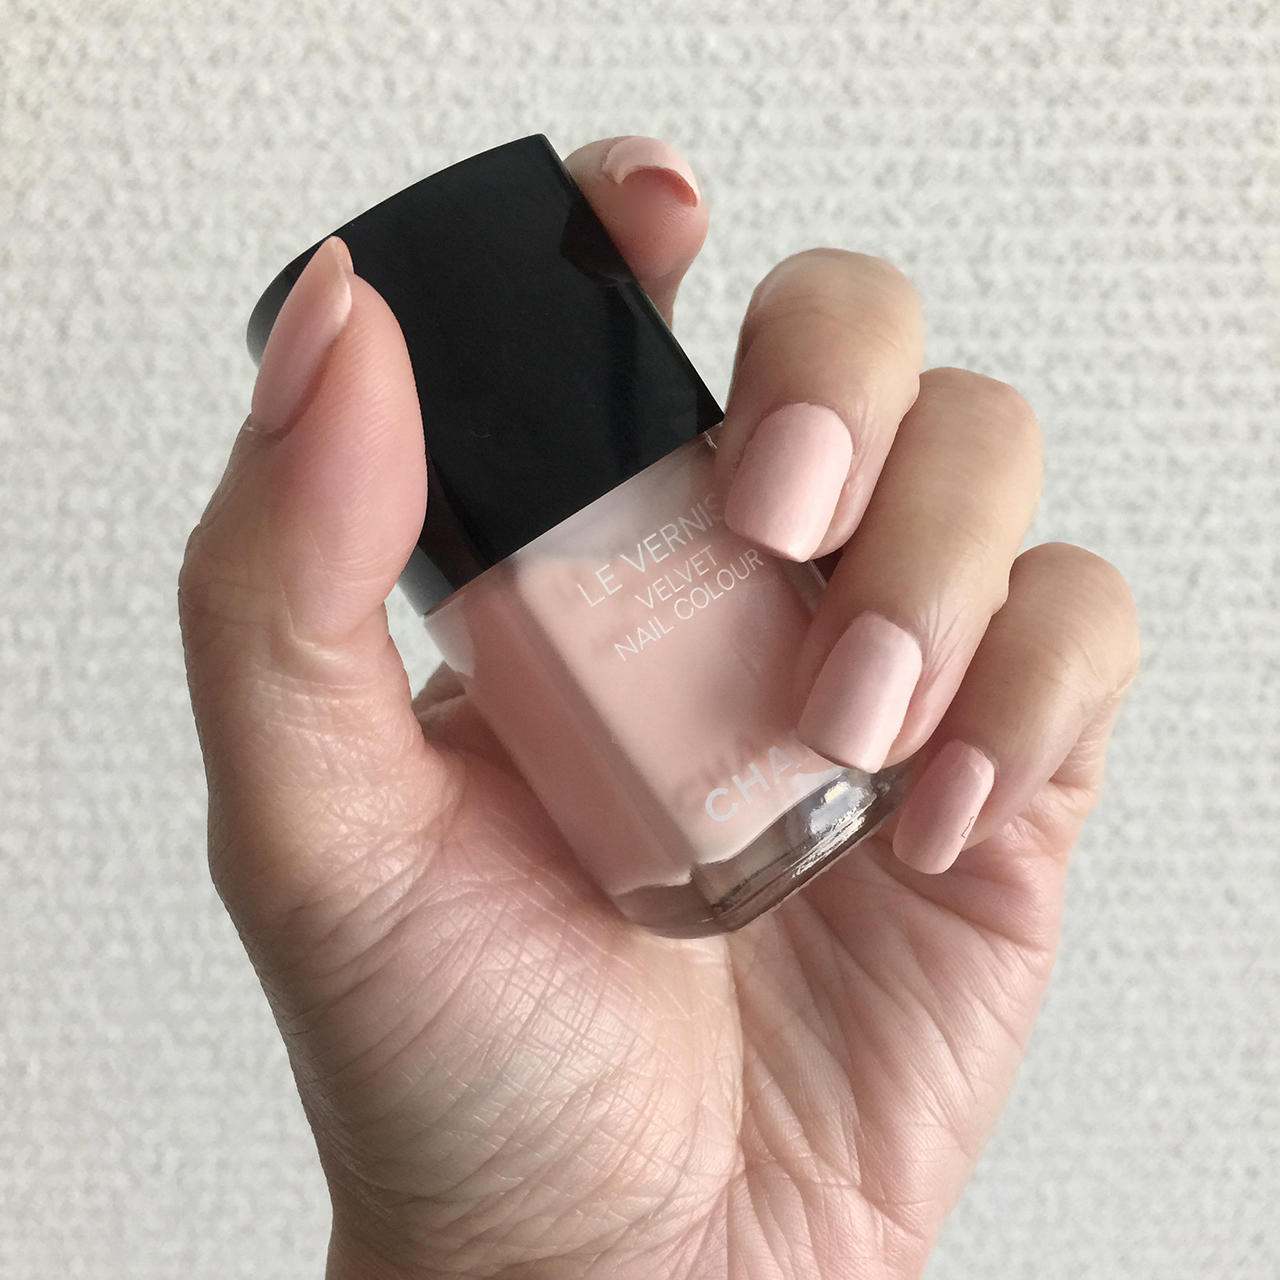 Chanel Le Vernis Velvet Pink Rubber nail swatch